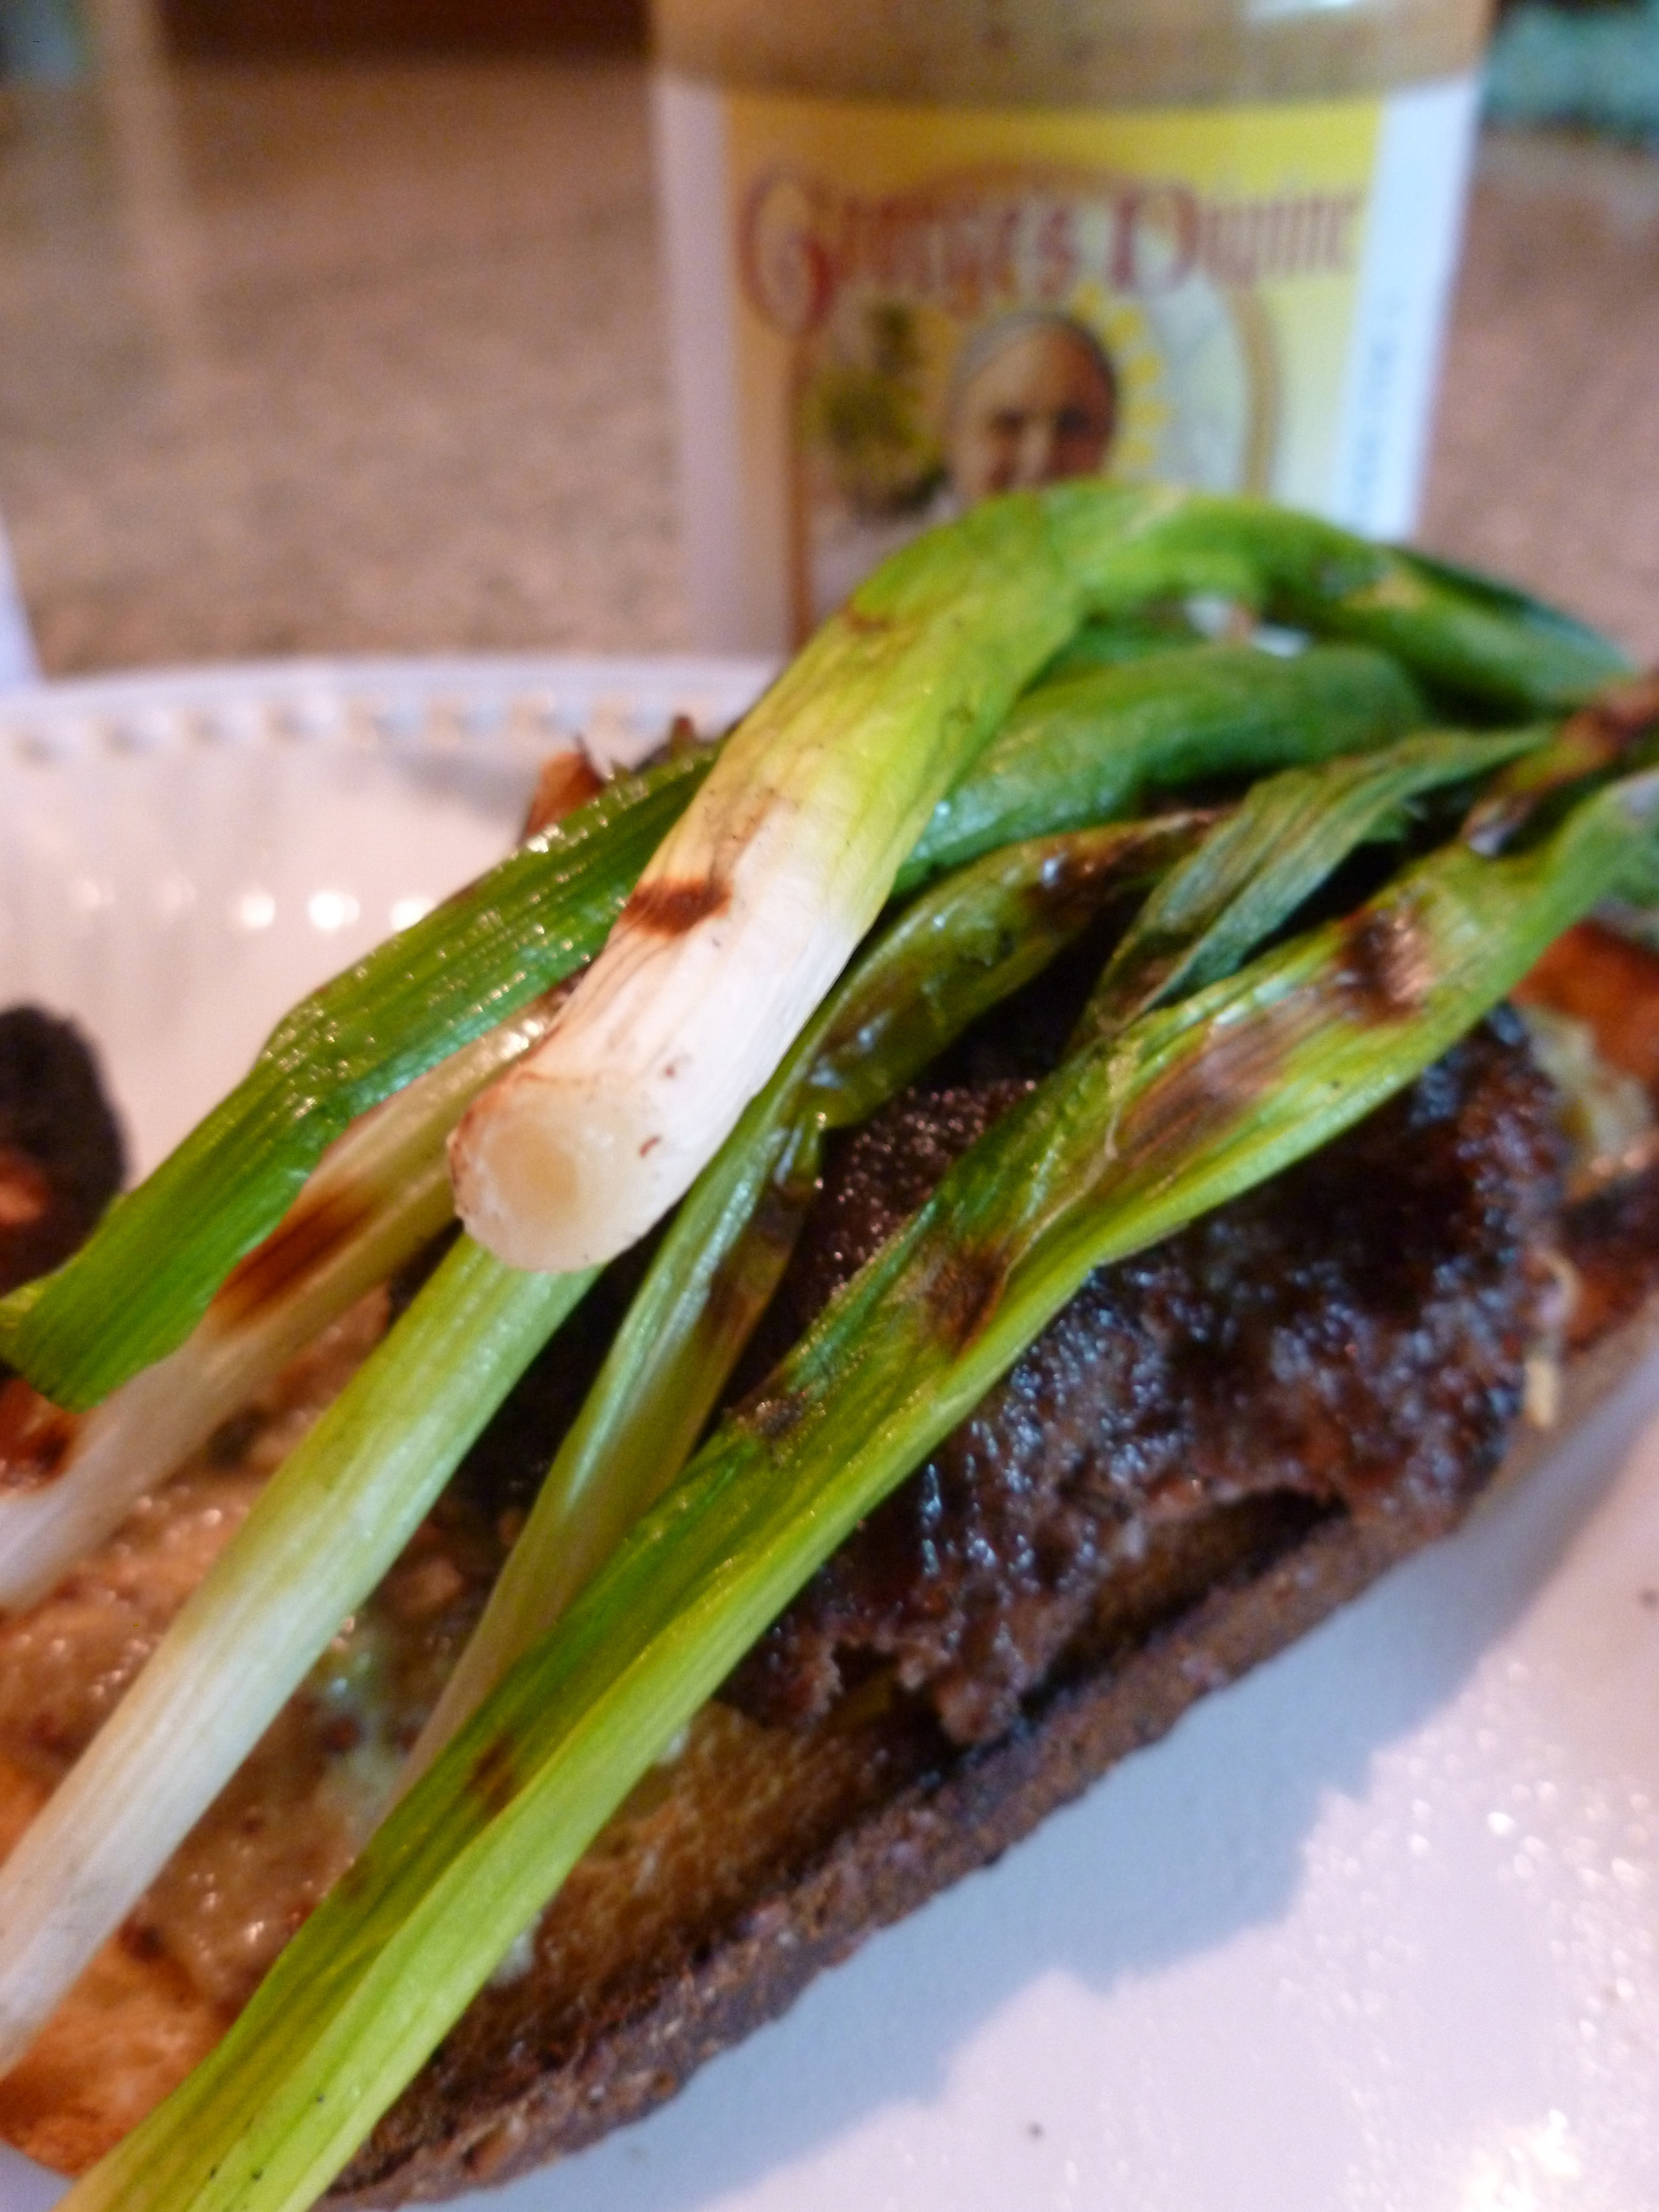 Bacon Burger #1 - mustard and grilled scallions